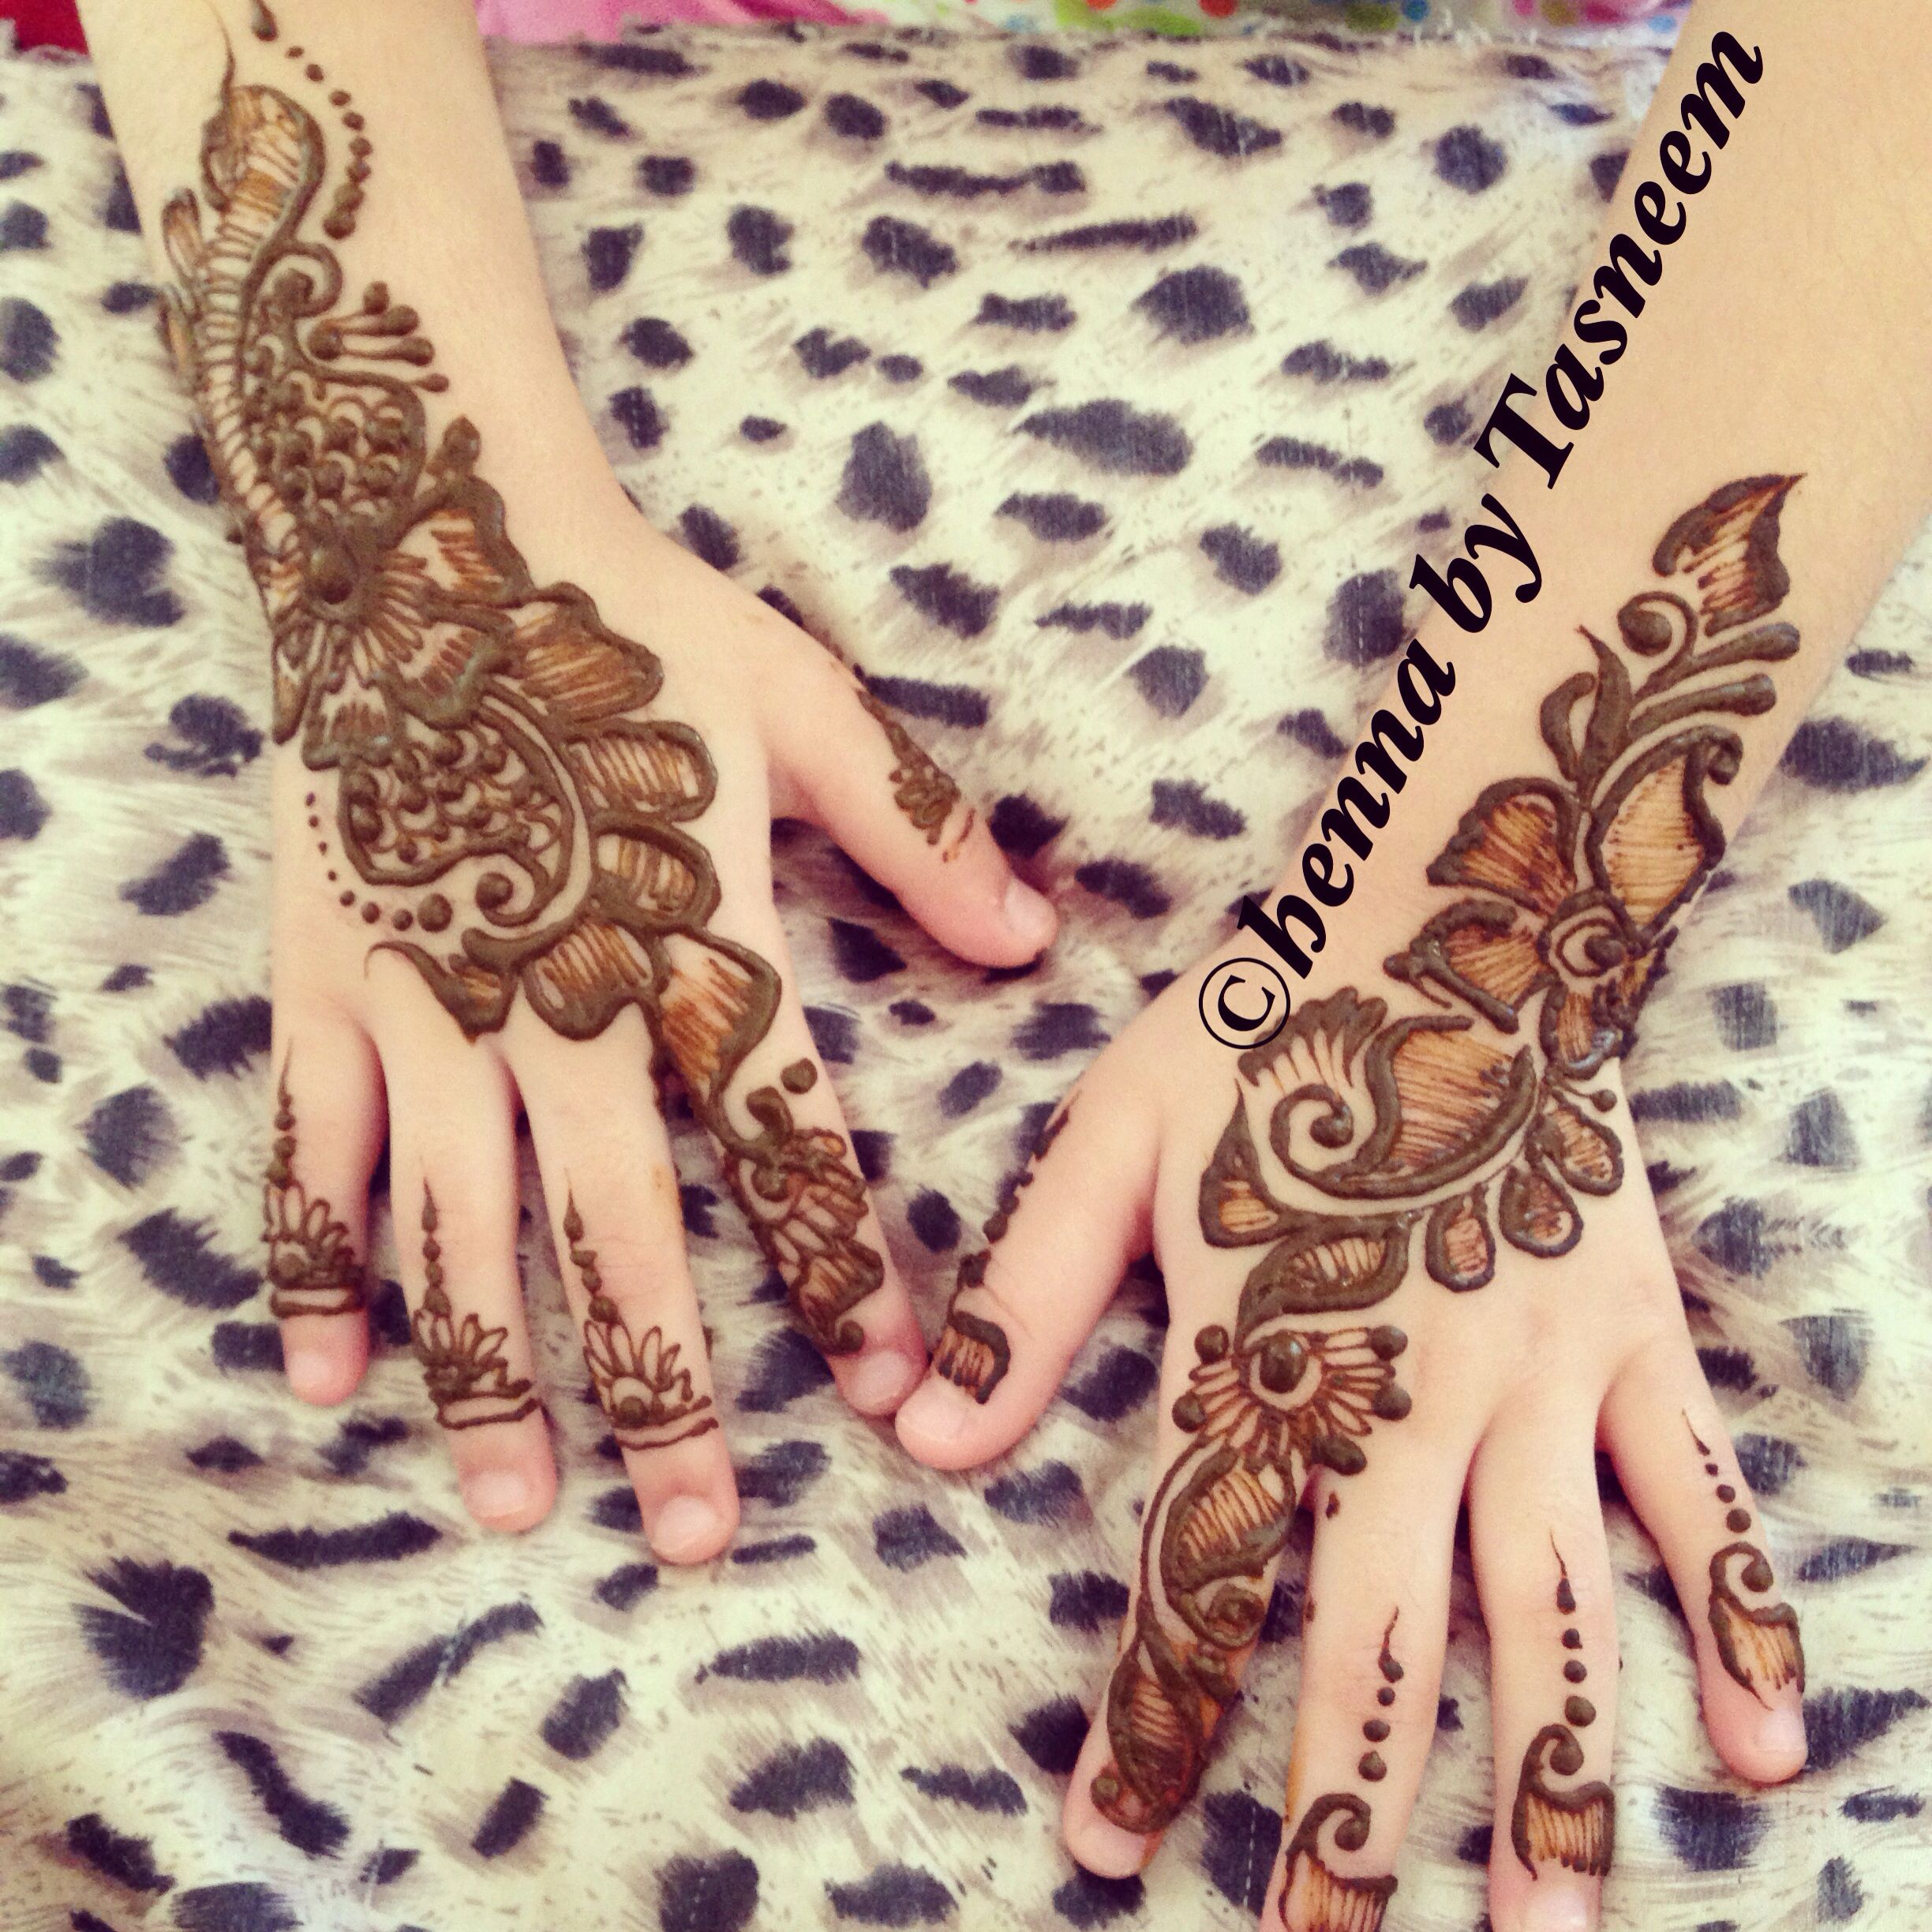 More Beautiful Henna On A Lil Girls Hands Henna Hand Tattoo Hand Henna Henna Patterns